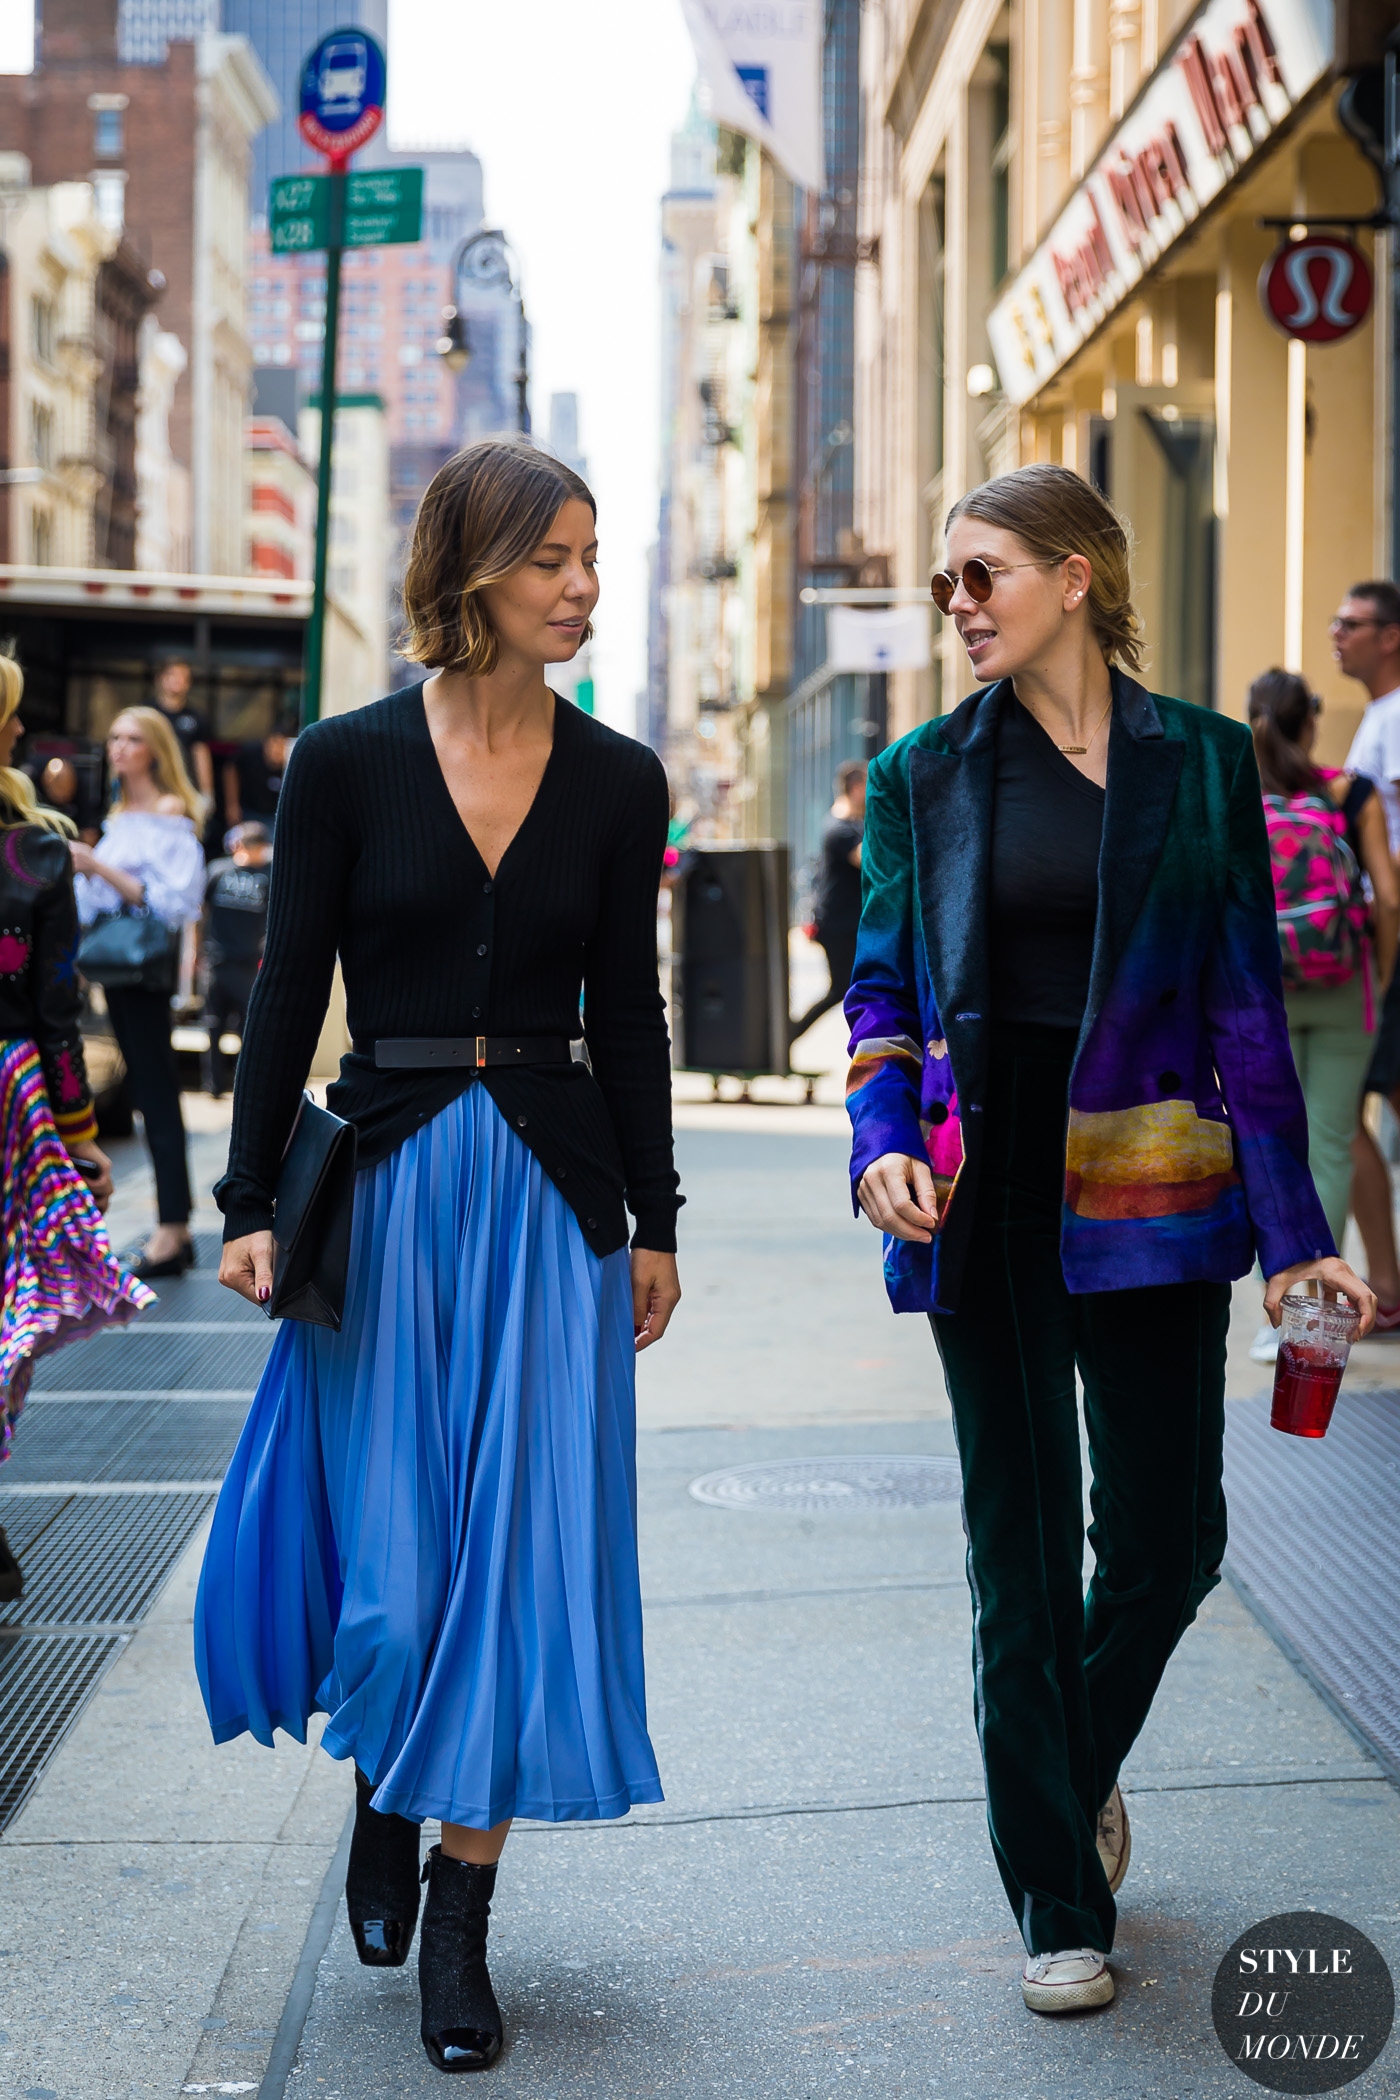 Annina Mislin and Megan Bowman Gray by STYLEDUMONDE Street Style Fashion Photography_48A7834